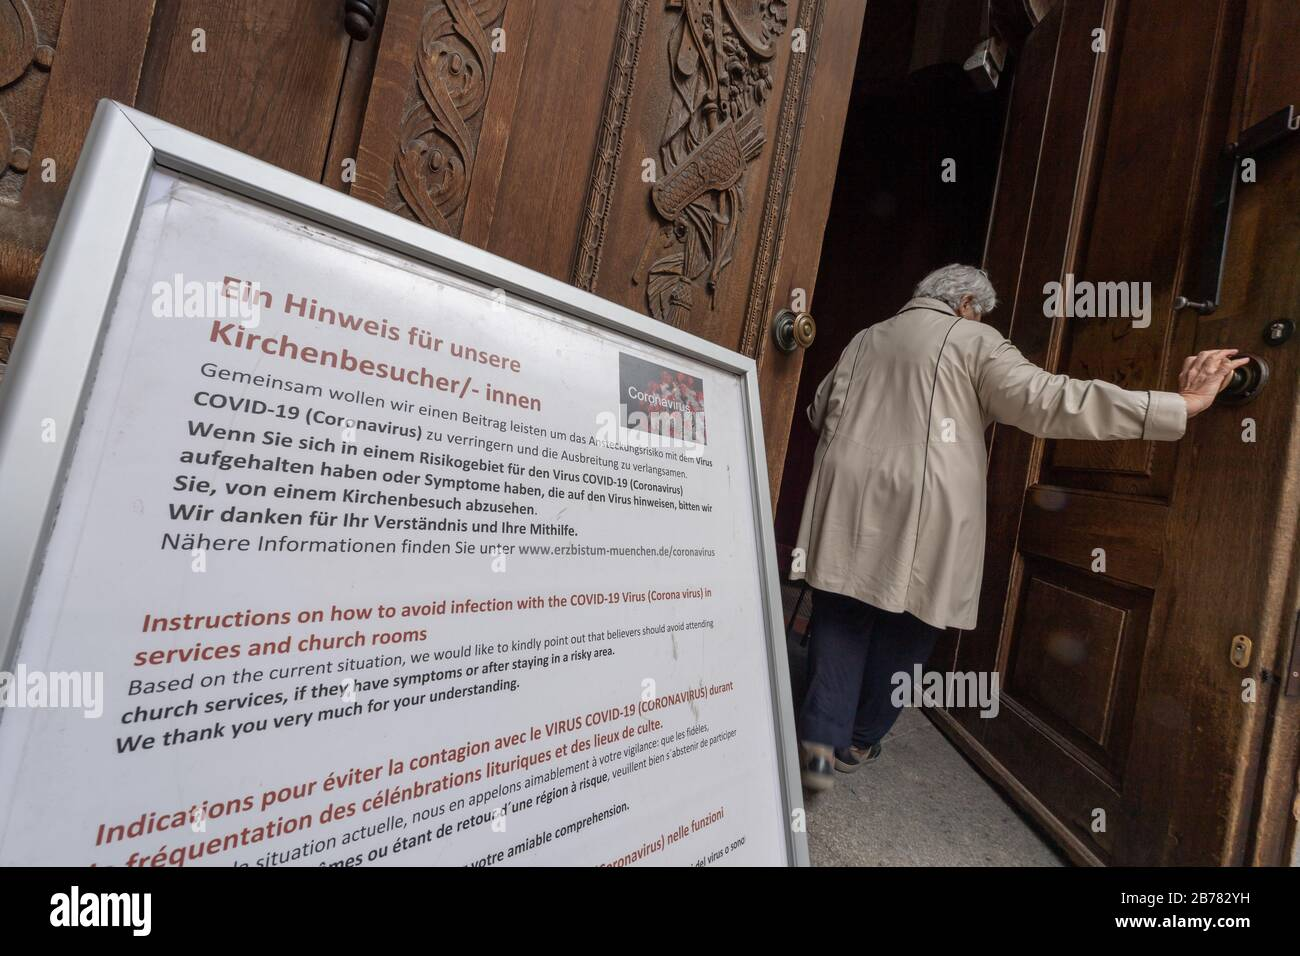 Munich, Germany. 14th Mar, 2020. A woman walks through the entrance door of the Frauenkirche, in front of which an operator advises visitors not to go to church because of the coronavirus. Credit: Peter Kneffel/dpa/Alamy Live News Stock Photo